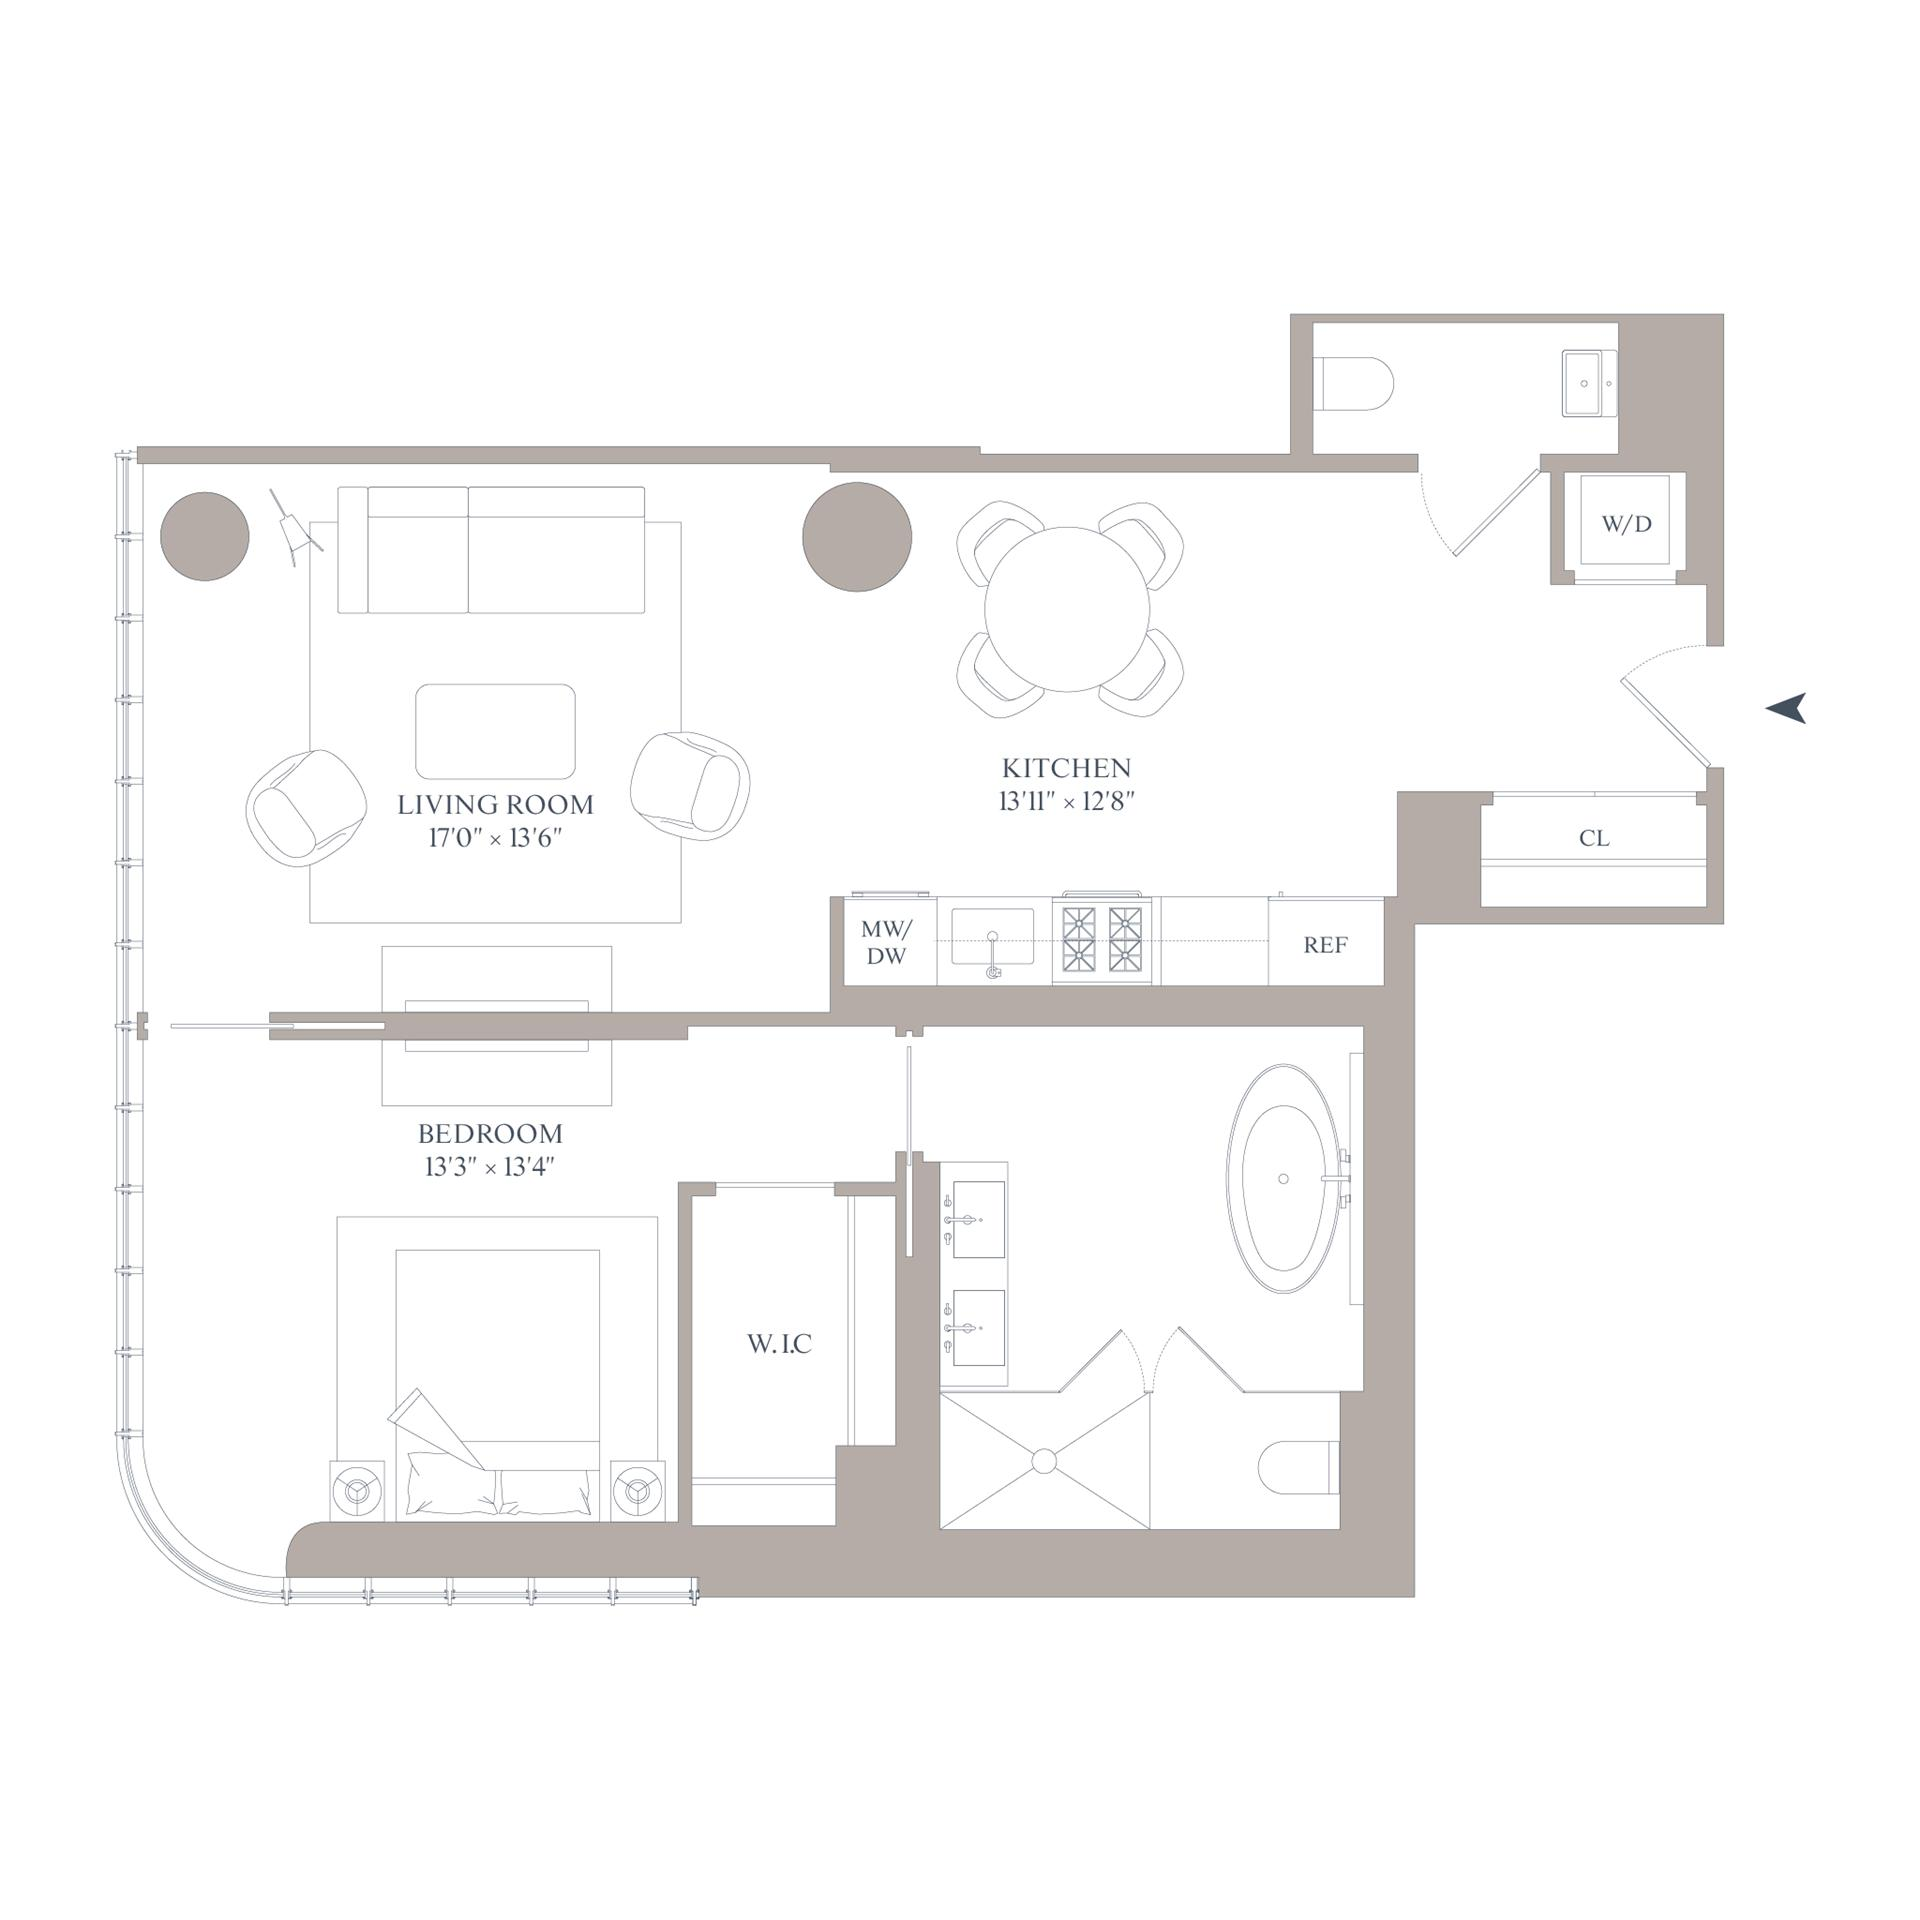 Floor plan of 565 Broome St, N9A - SoHo - Nolita, New York